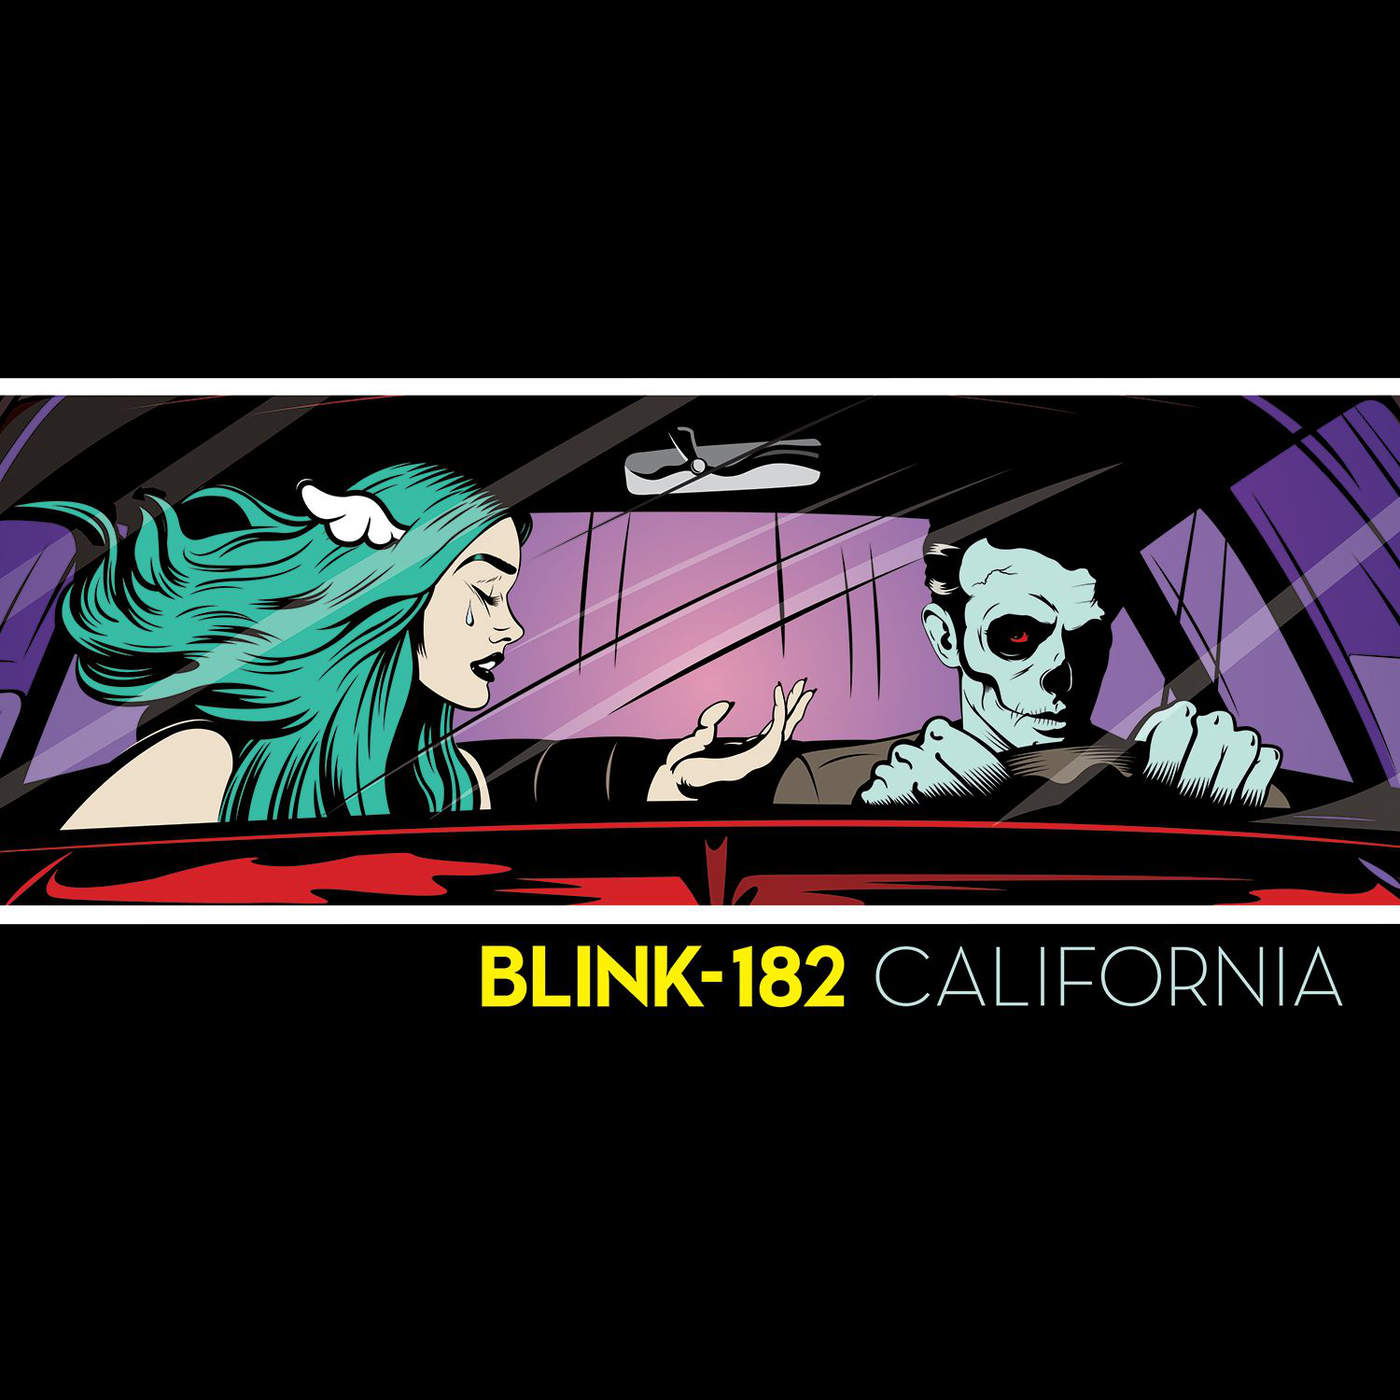 blink-182 - California (Deluxe Edition)